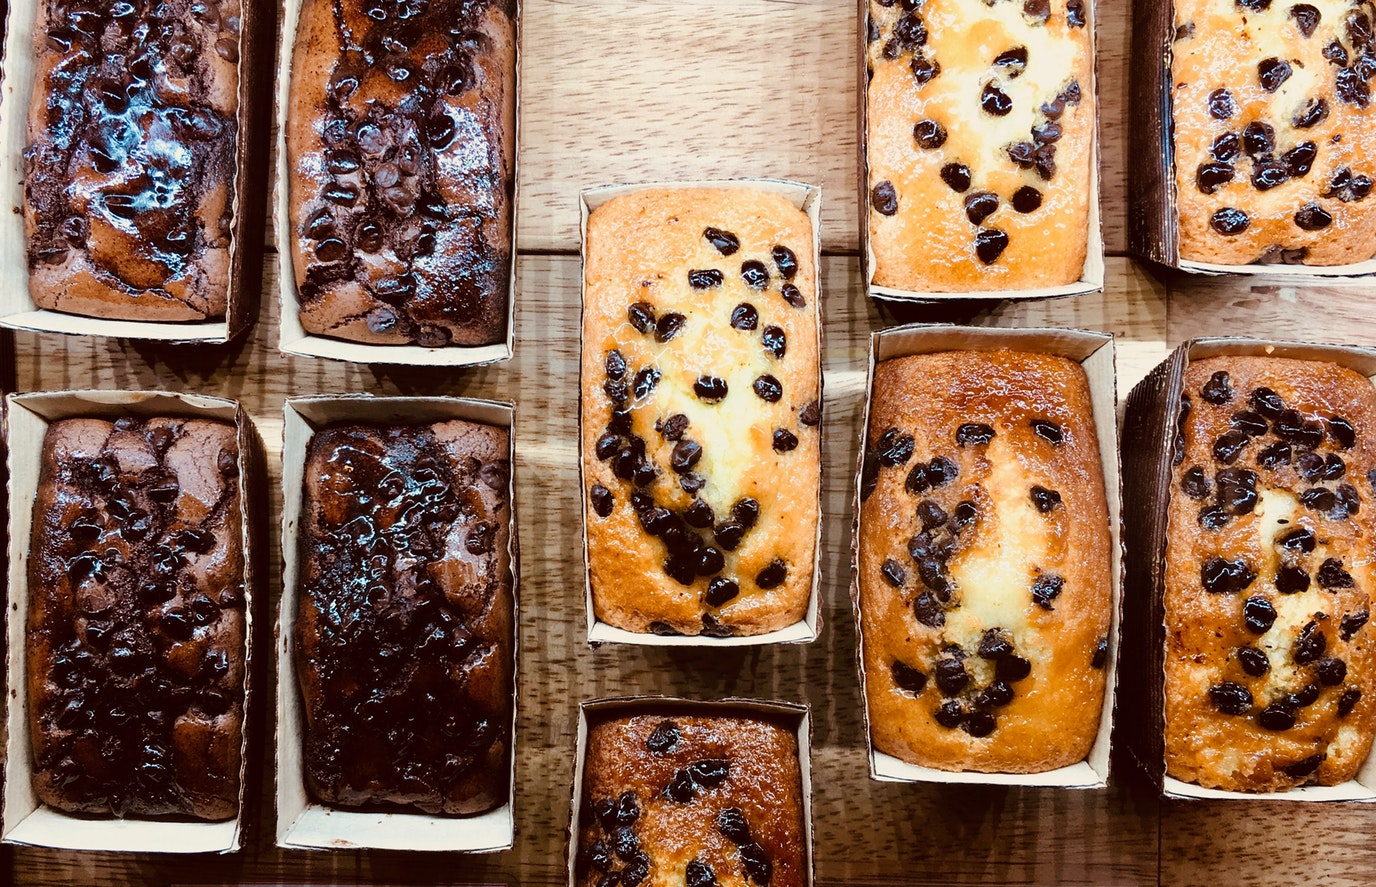 Wholesale / Contract Bakery Manufacturer - Option to acquire the freehold